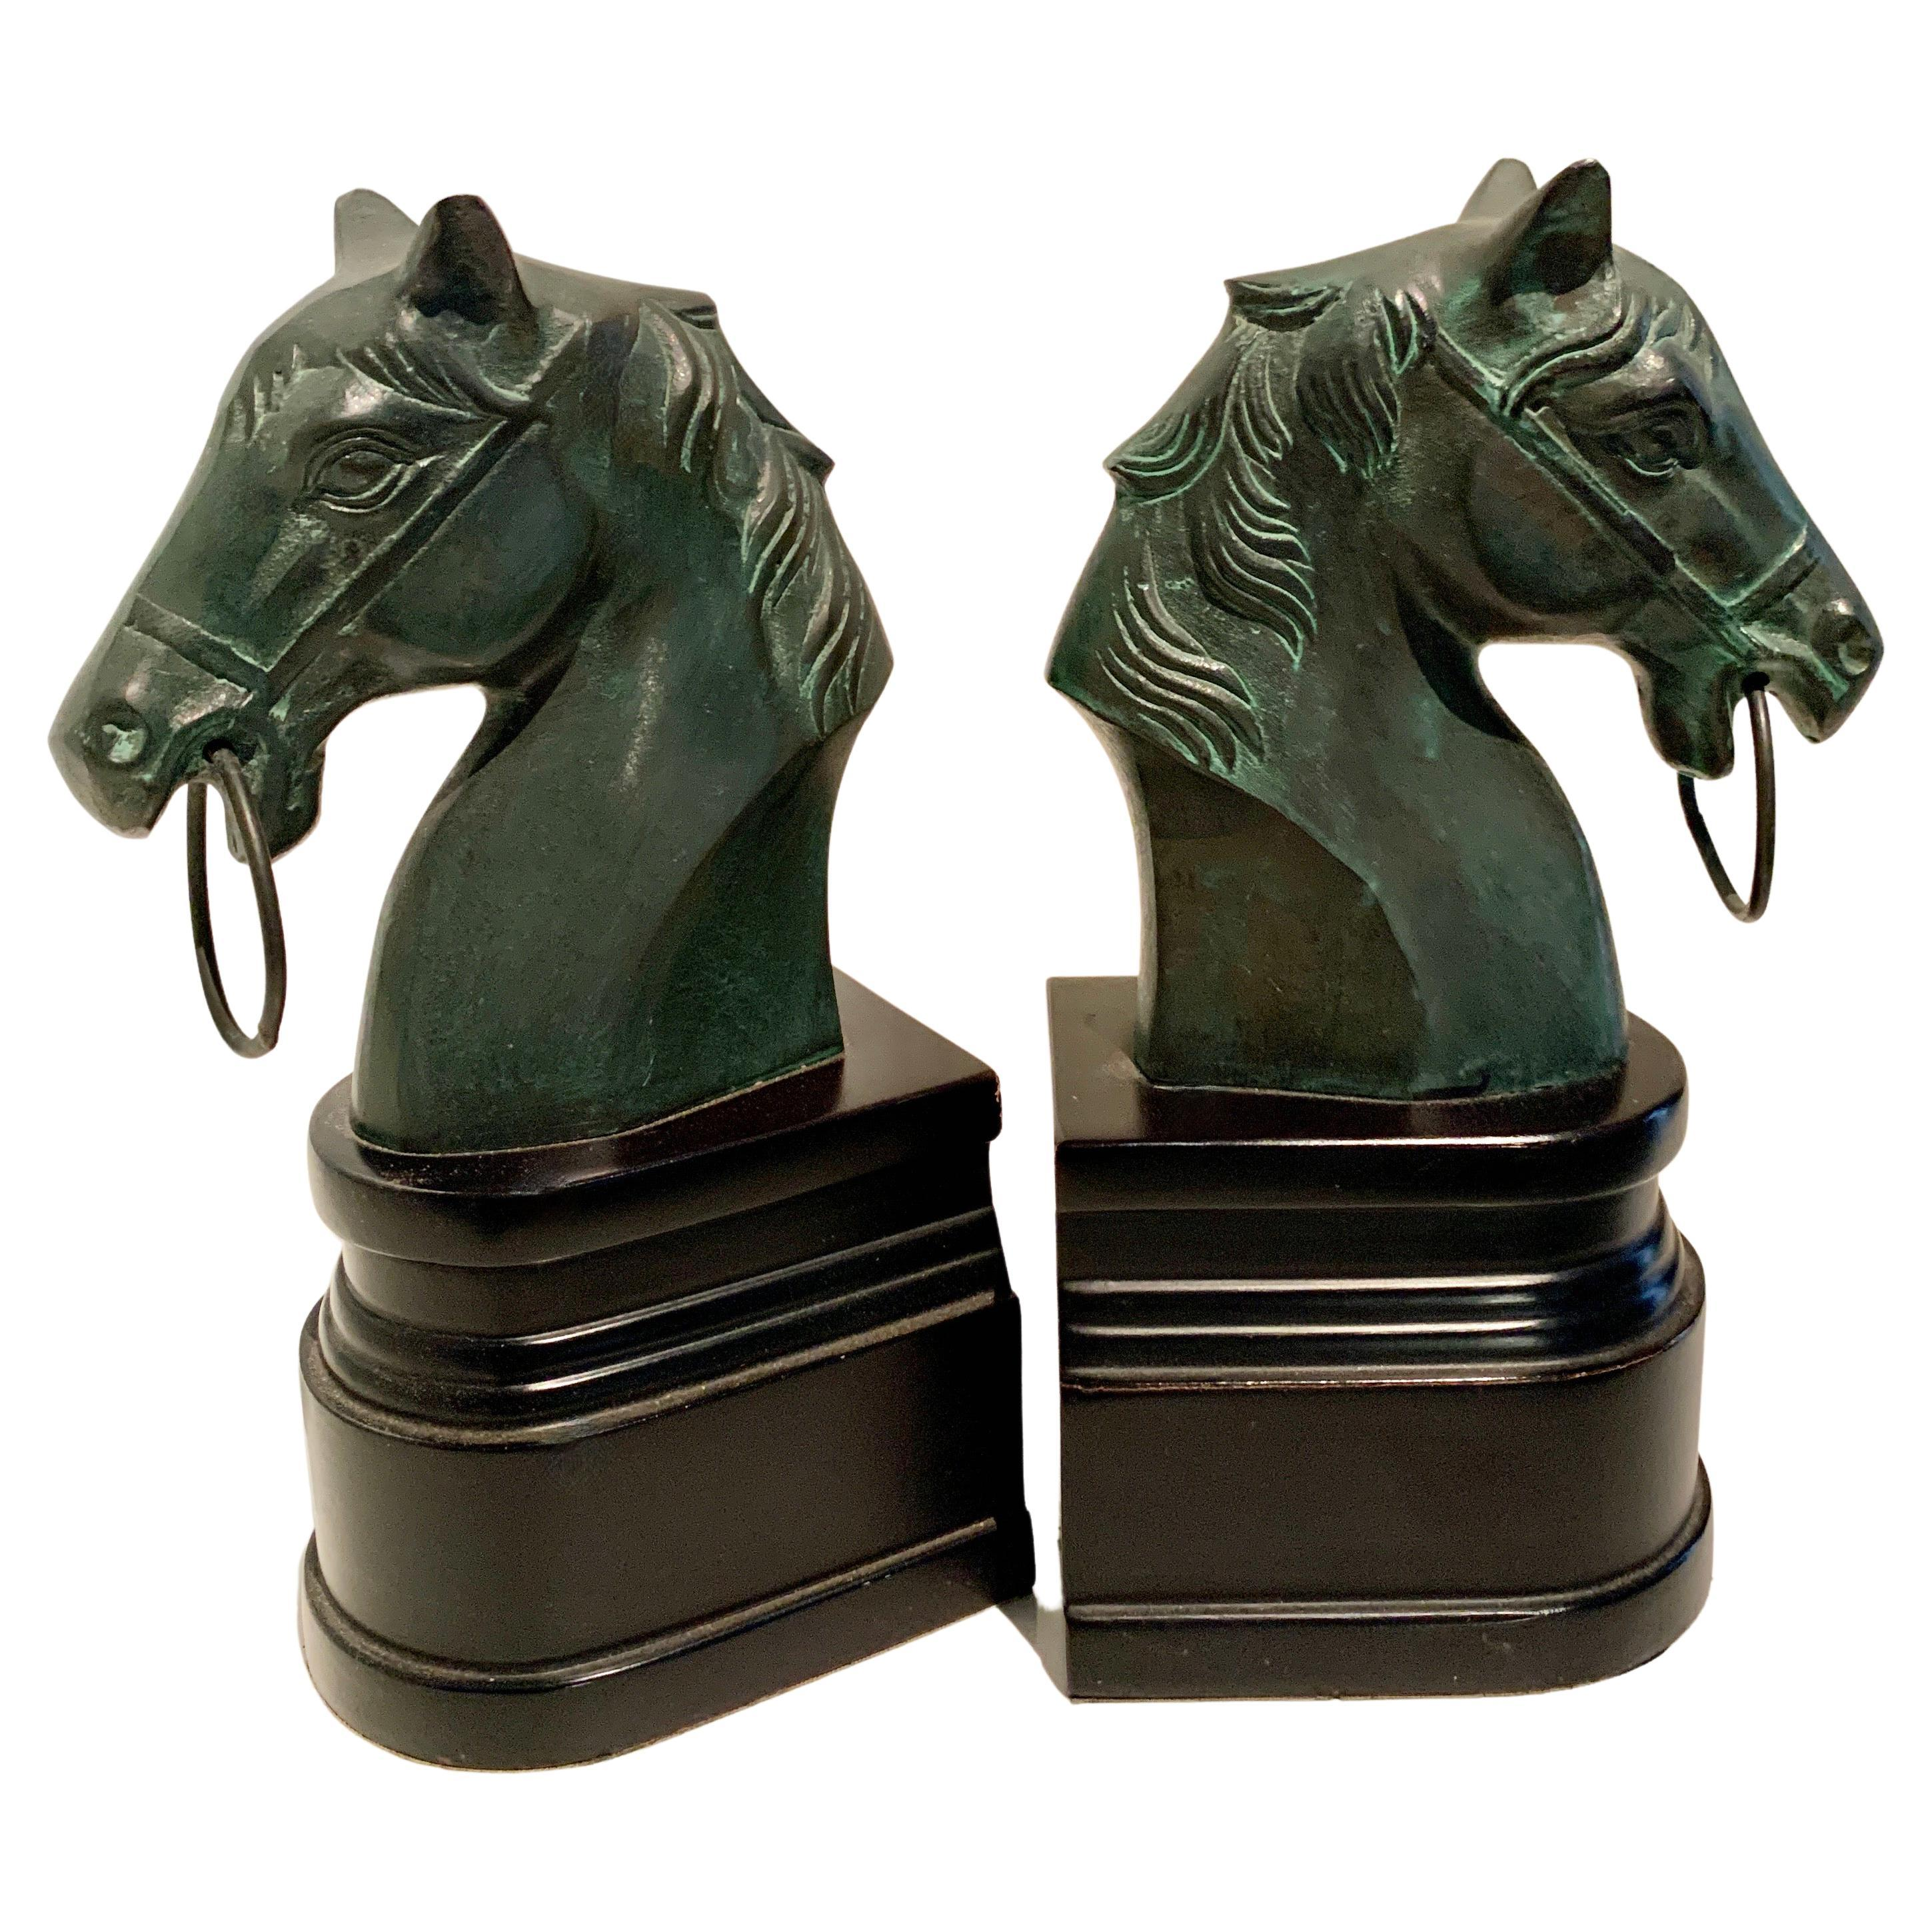 Pair of Patinated Bronze Horse Head Bookends on Stand